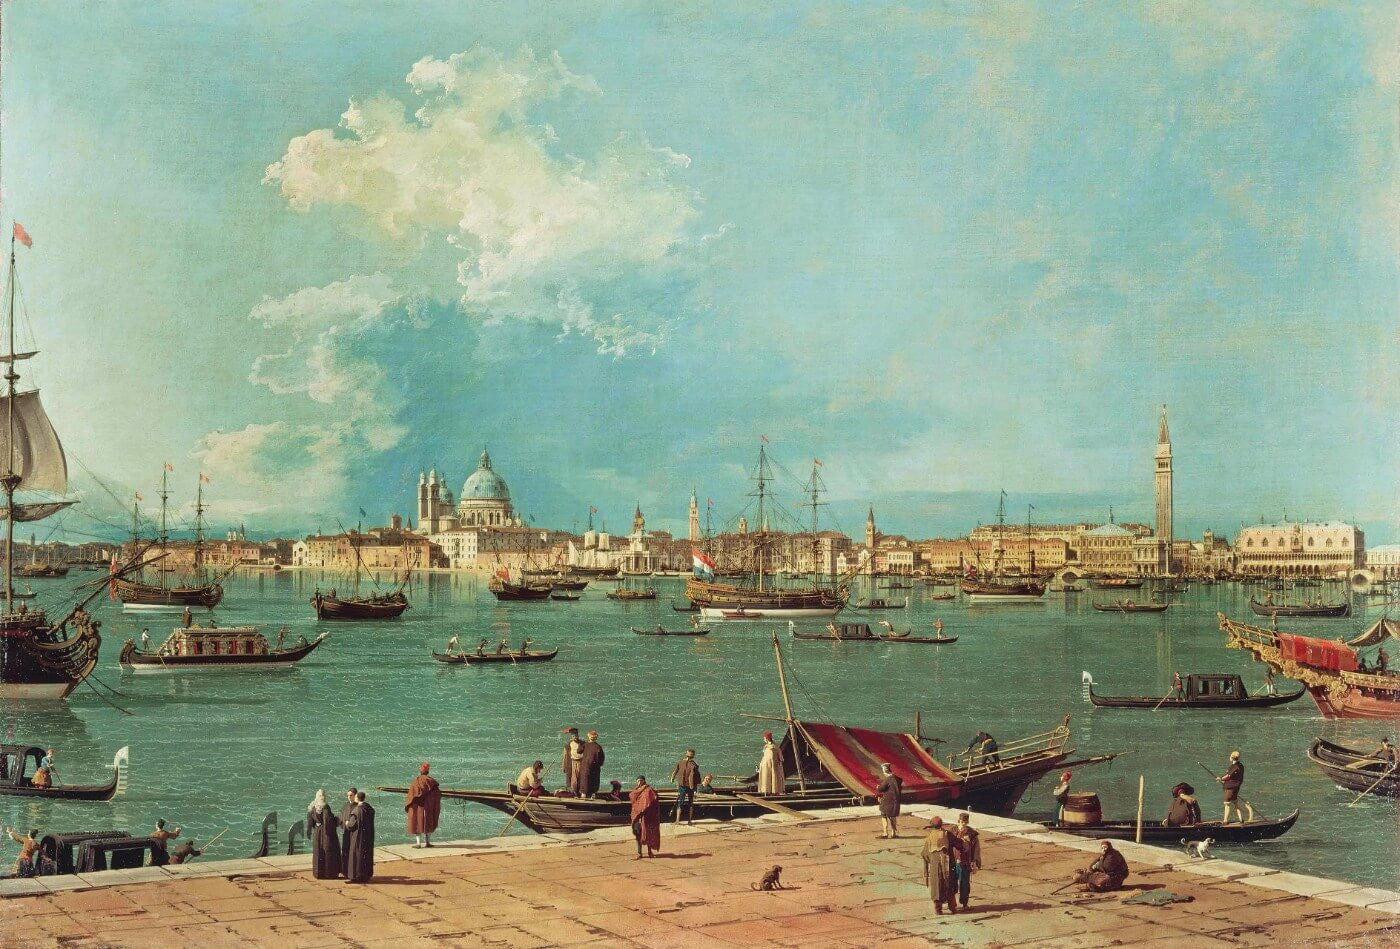 Canaletto Paintings | Buy Posters, Frames, Canvas, Digital Art & Large Size Prints